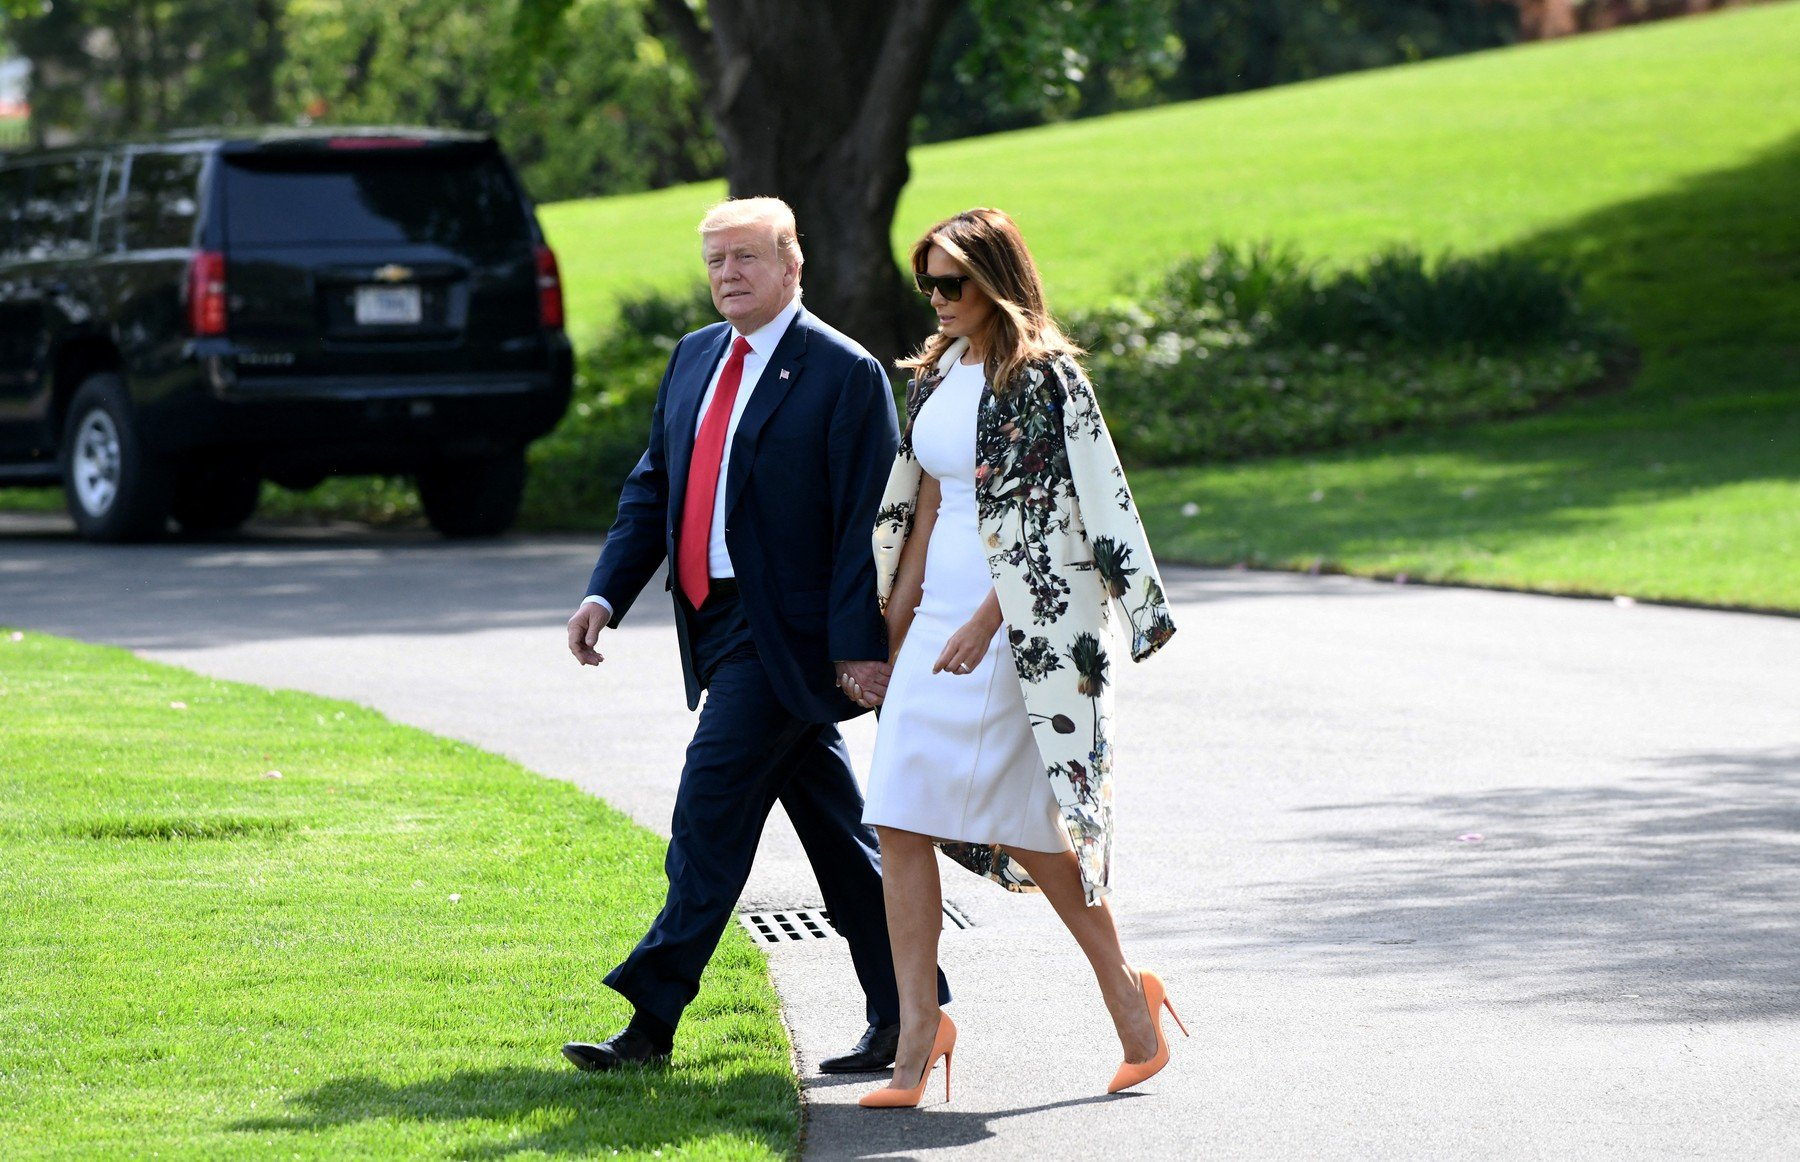 US President Donald Trump and first lady Melania Trump depart the White House on April 18, 2019 in Washington D.C., Image: 426831564, License: Rights-managed, Restrictions: , Model Release: no, Credit line: Profimedia, Abaca Press